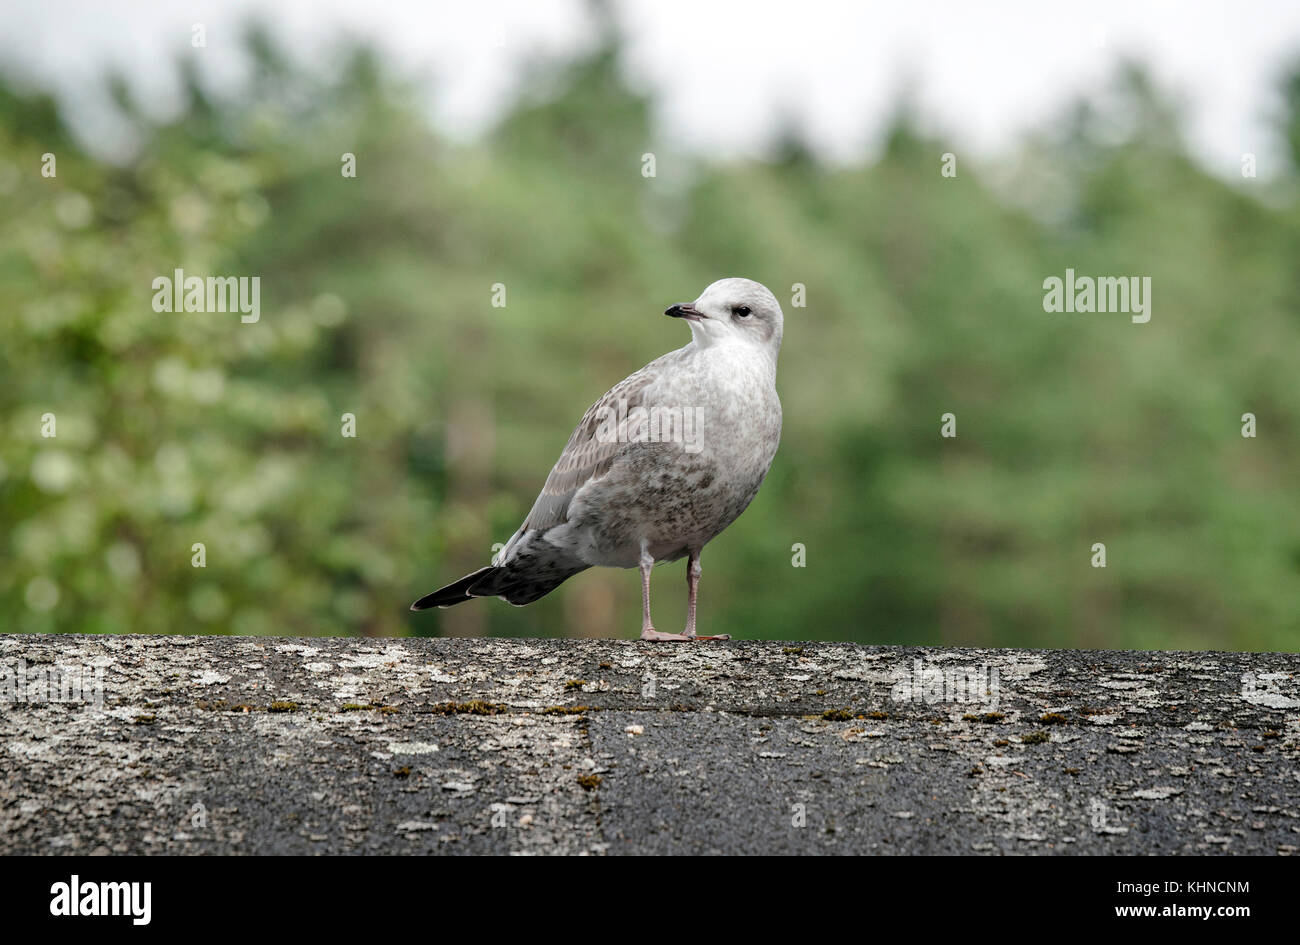 Young common gull standing on a wooden log in a forest in grey colors - Stock Image